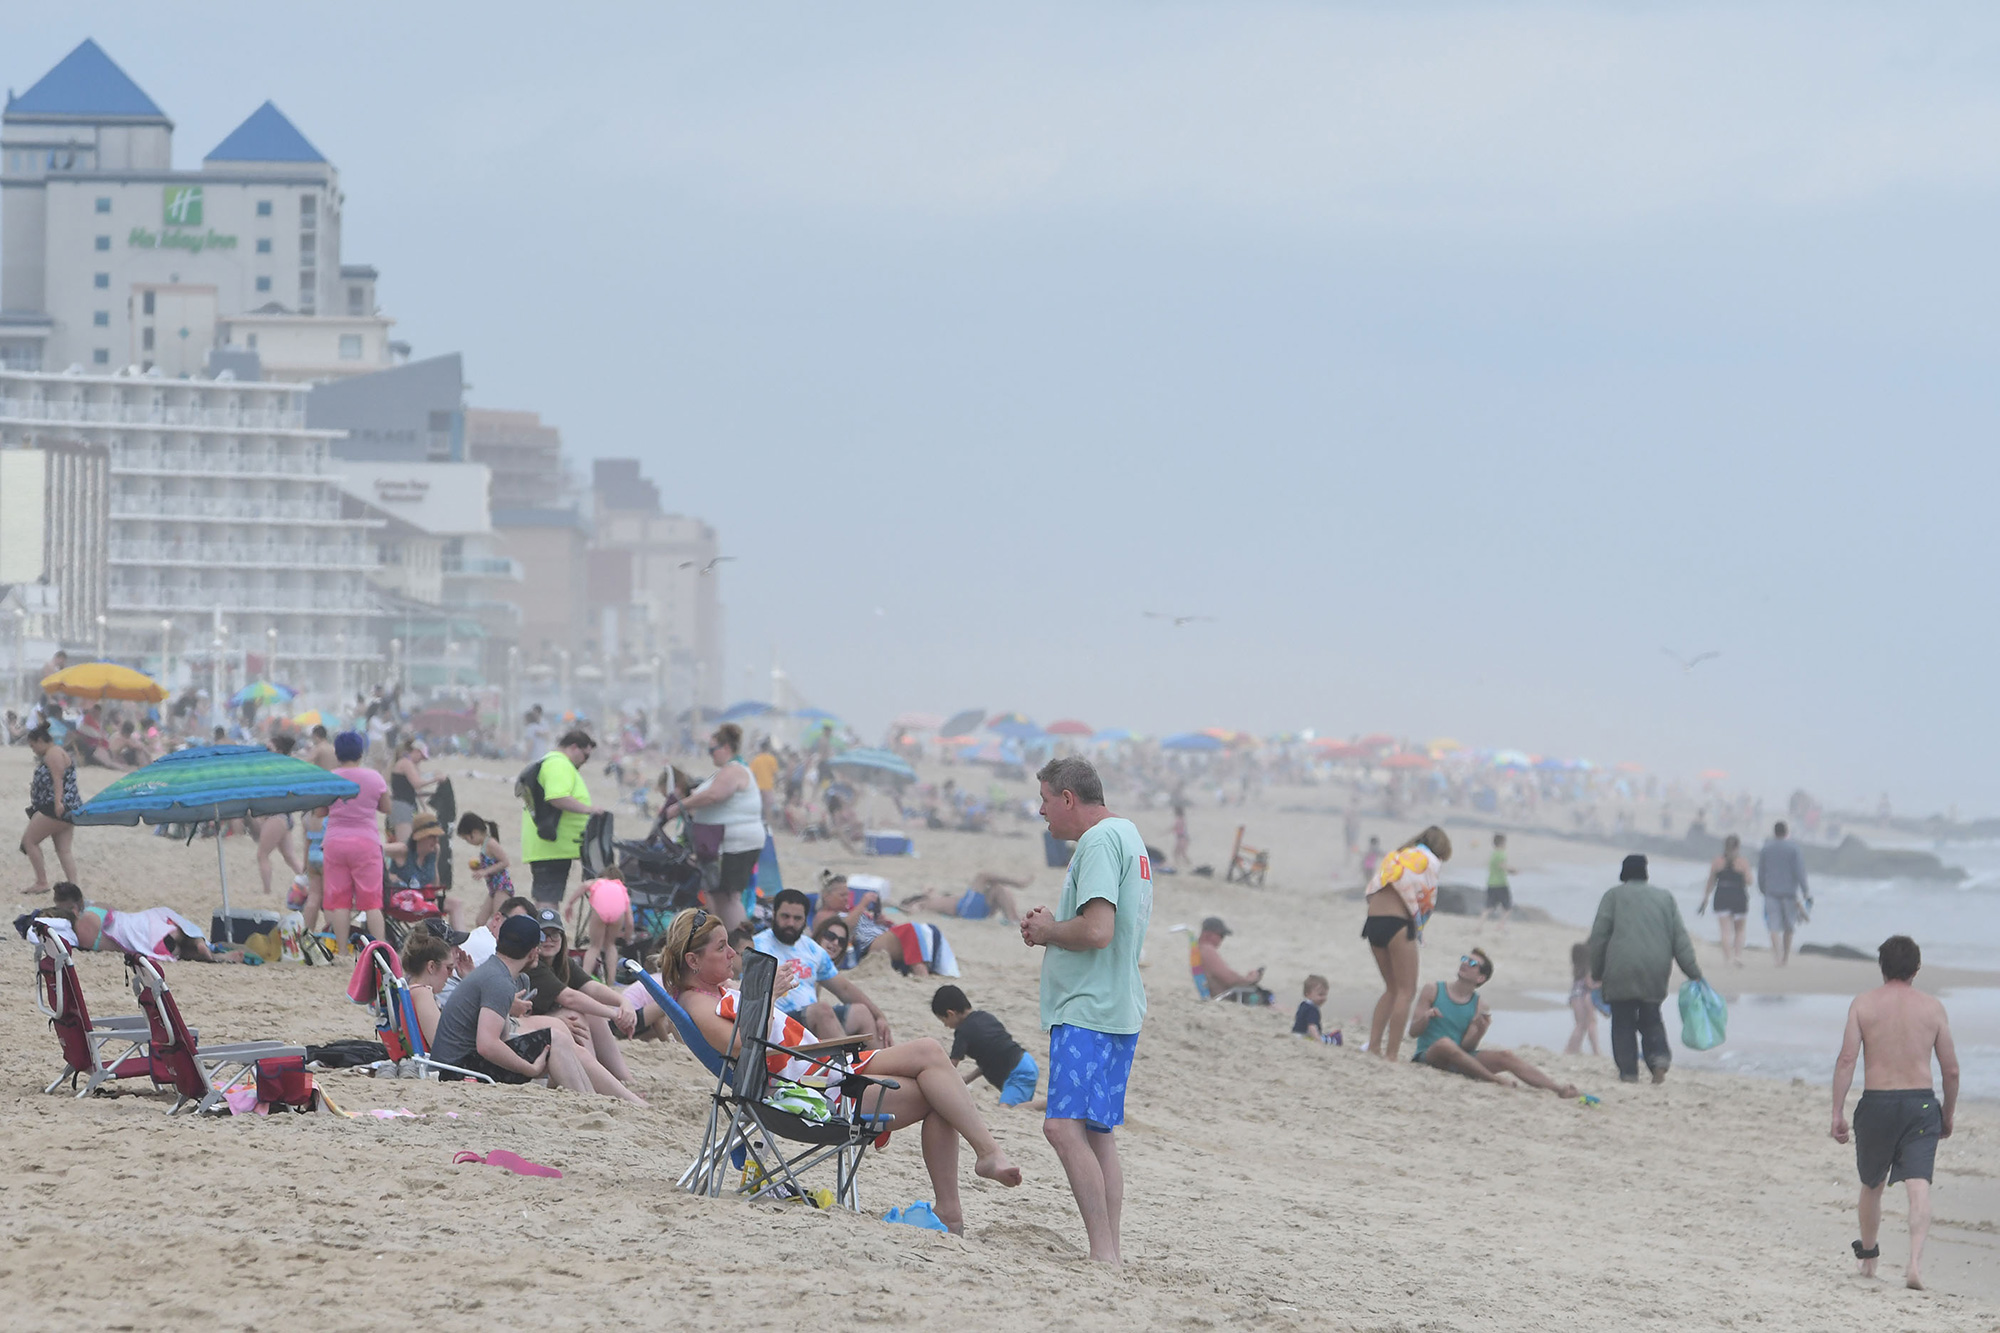 Thousands flocked to Ocean City Saturday, May 16, 2020 after the Mayor opened the hotels and beach and boardwalk for visitors after being closed for weeks